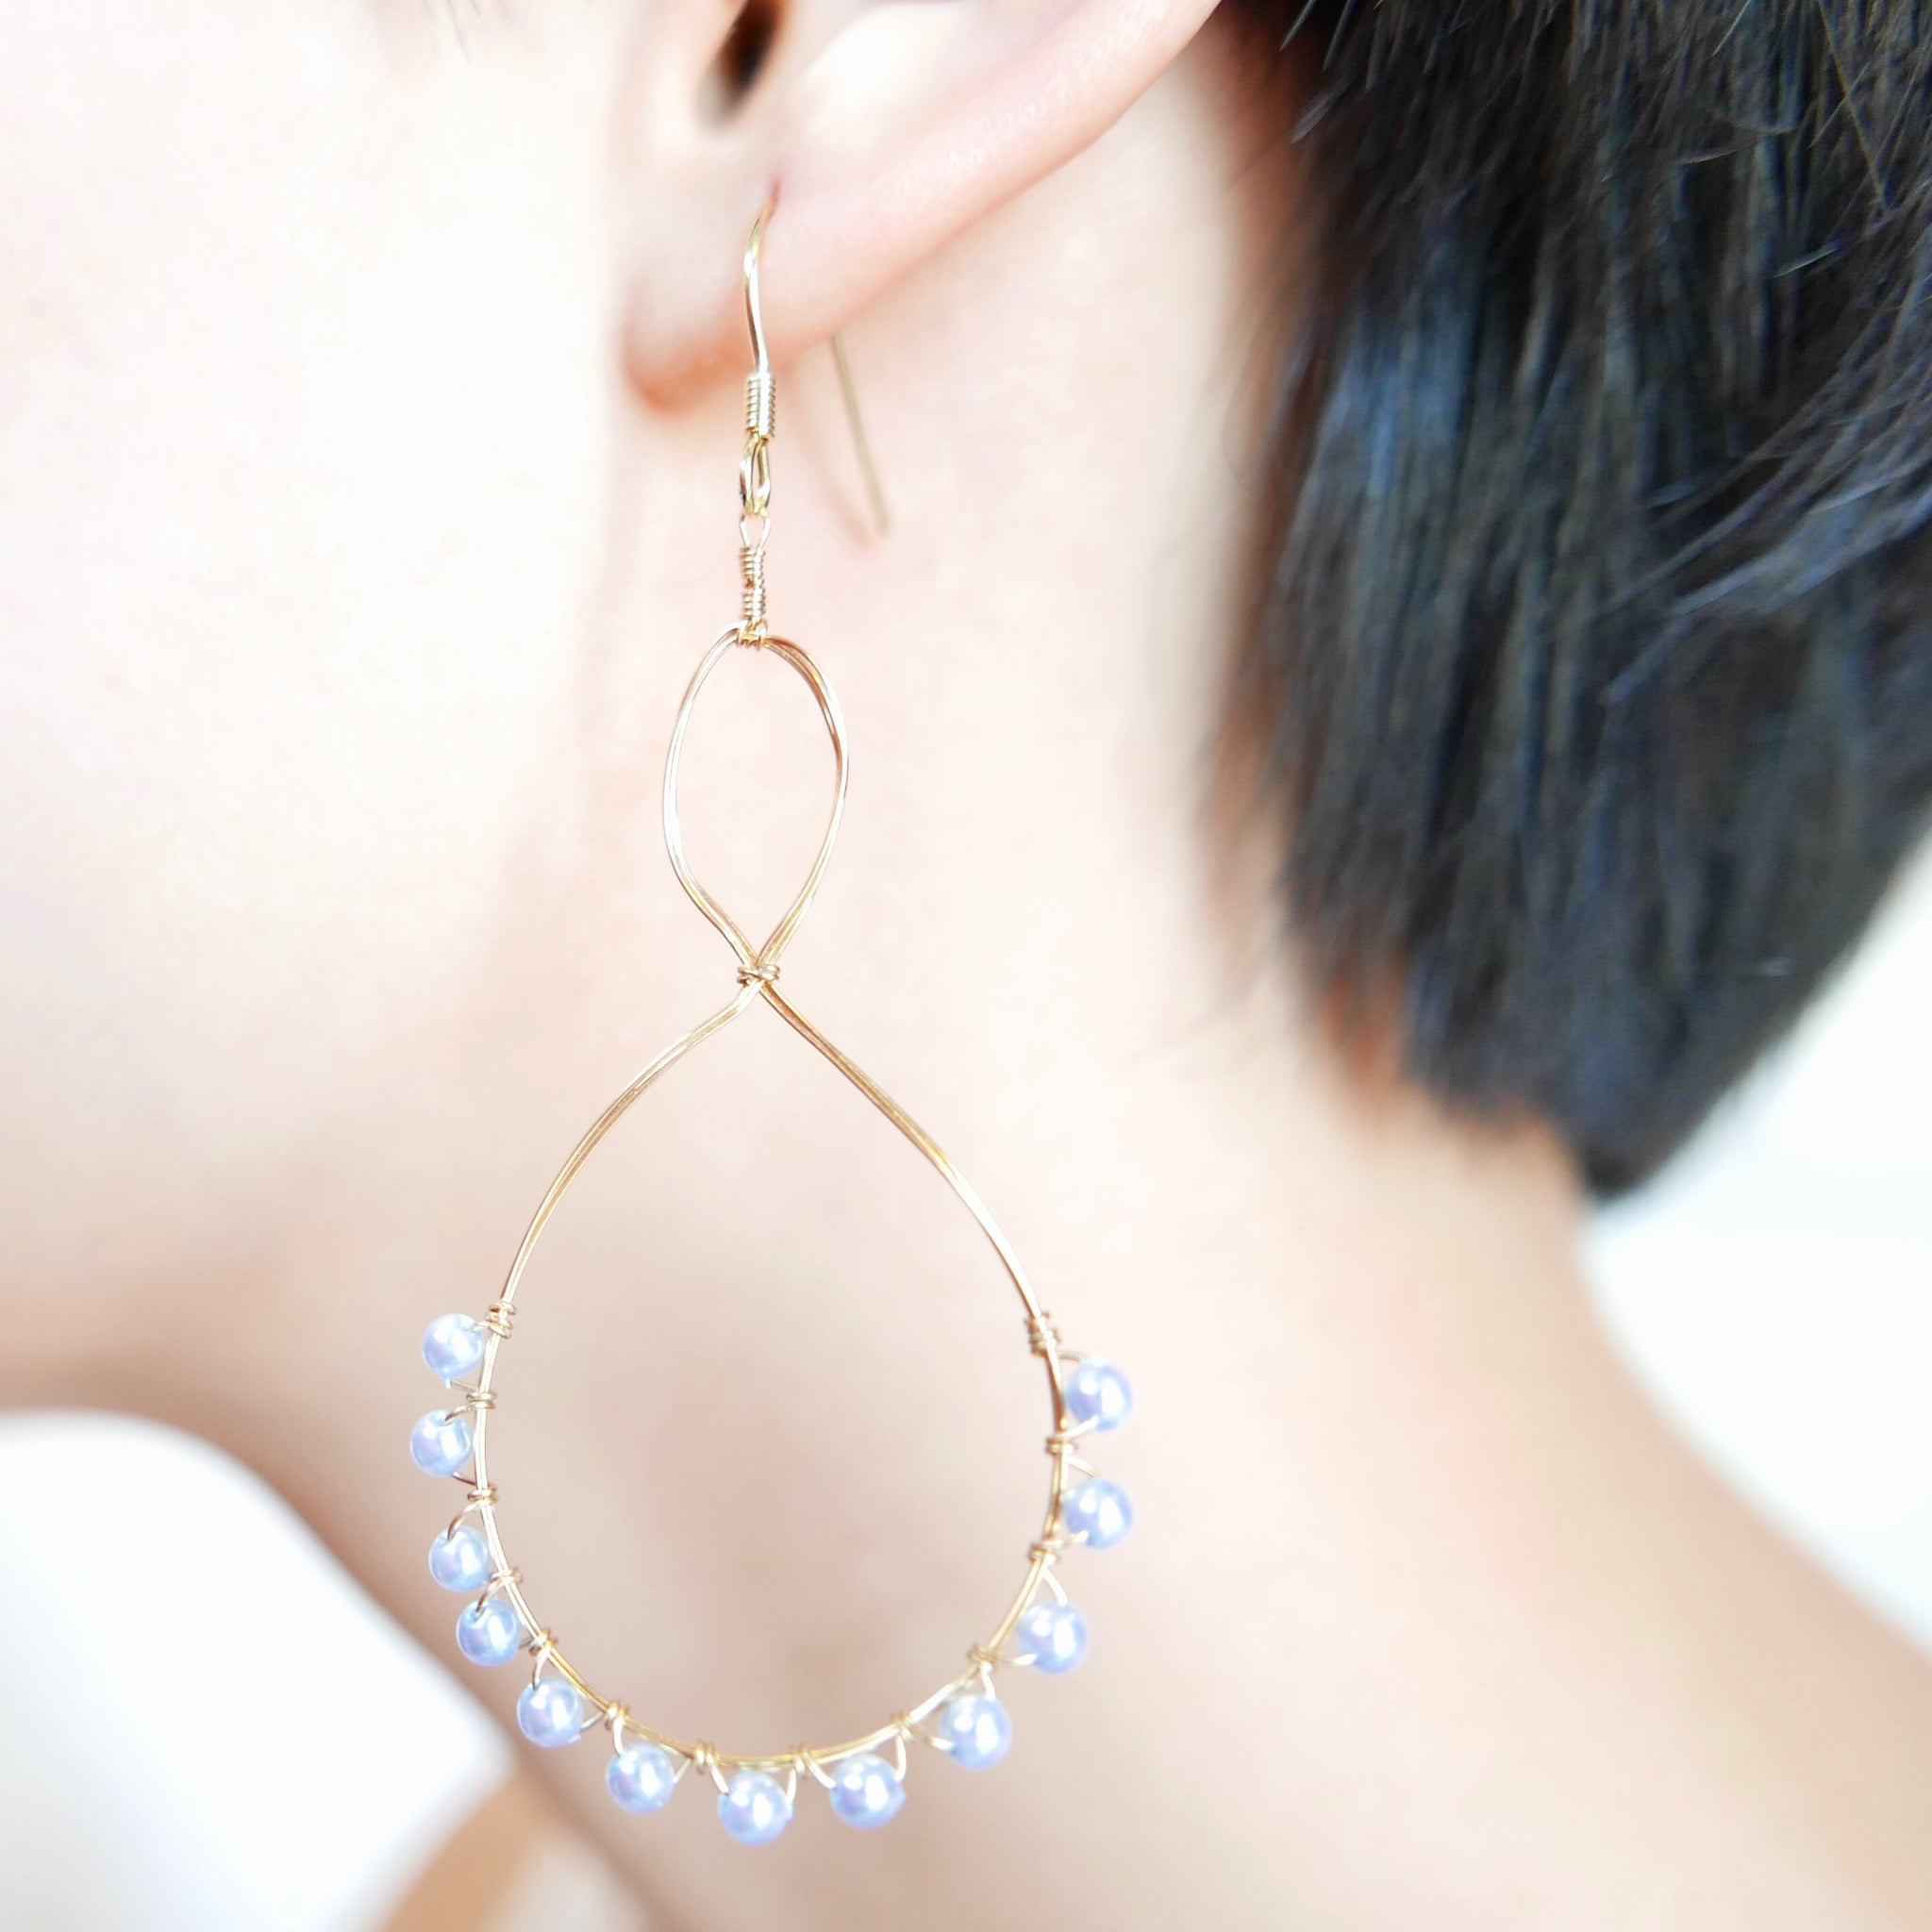 Bottle Earrings (Pale Blue)